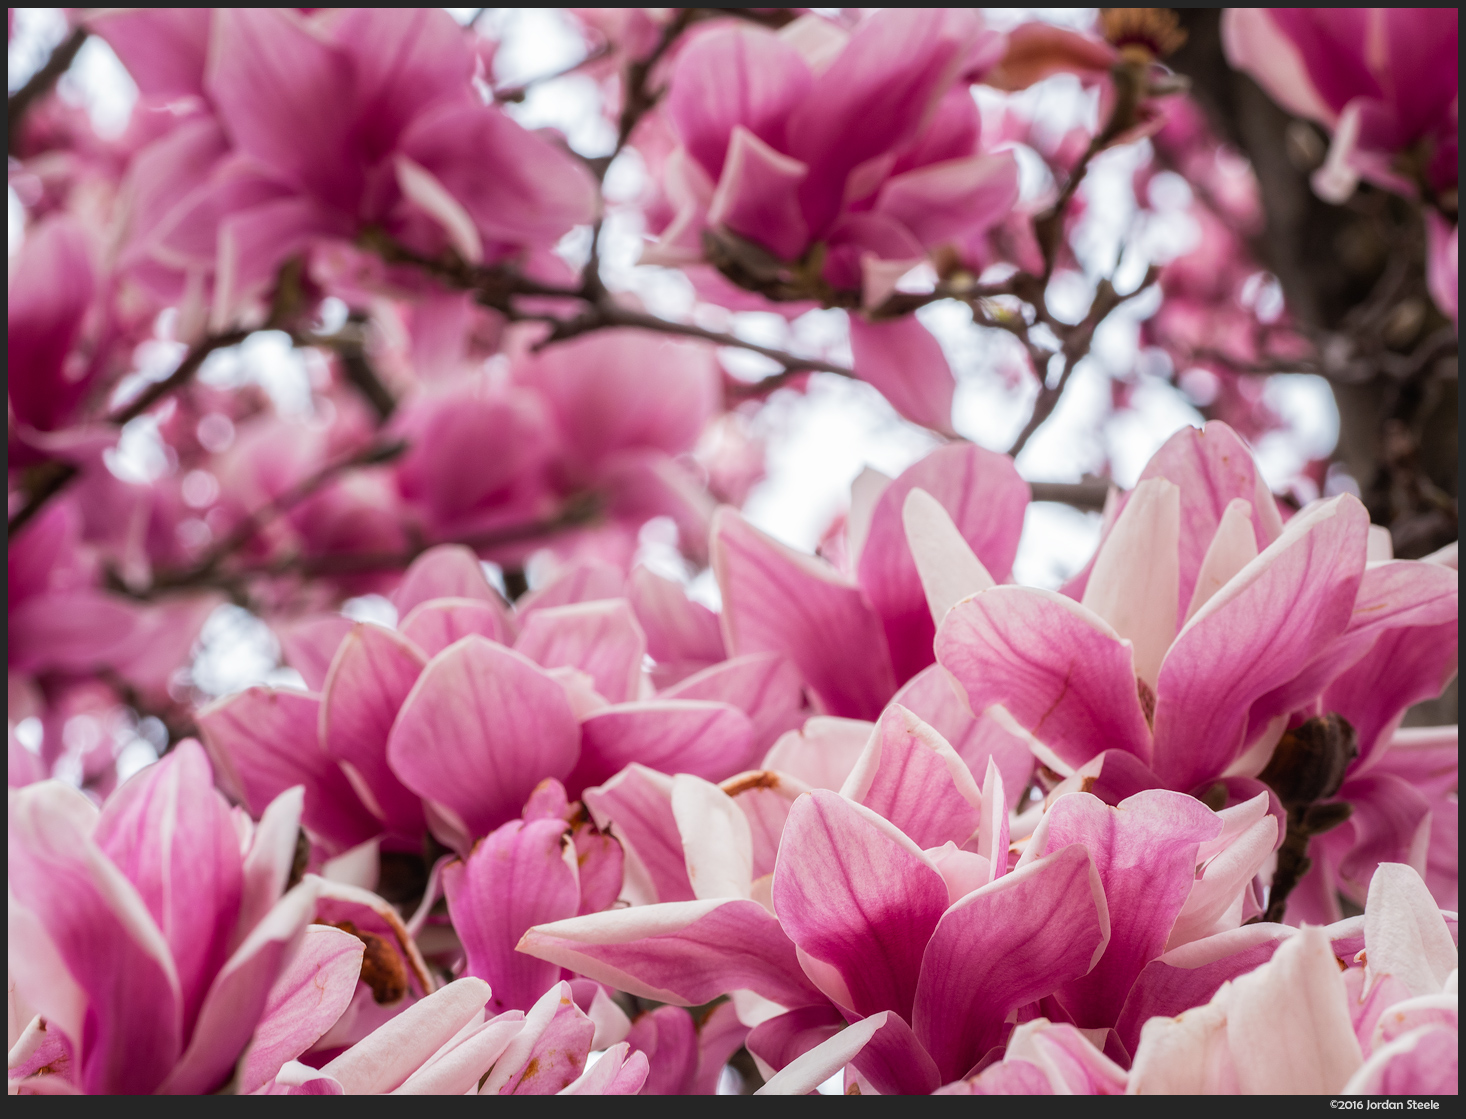 Magnolia - Olympus Pen-F with Olympus 60mm f/2.8 @